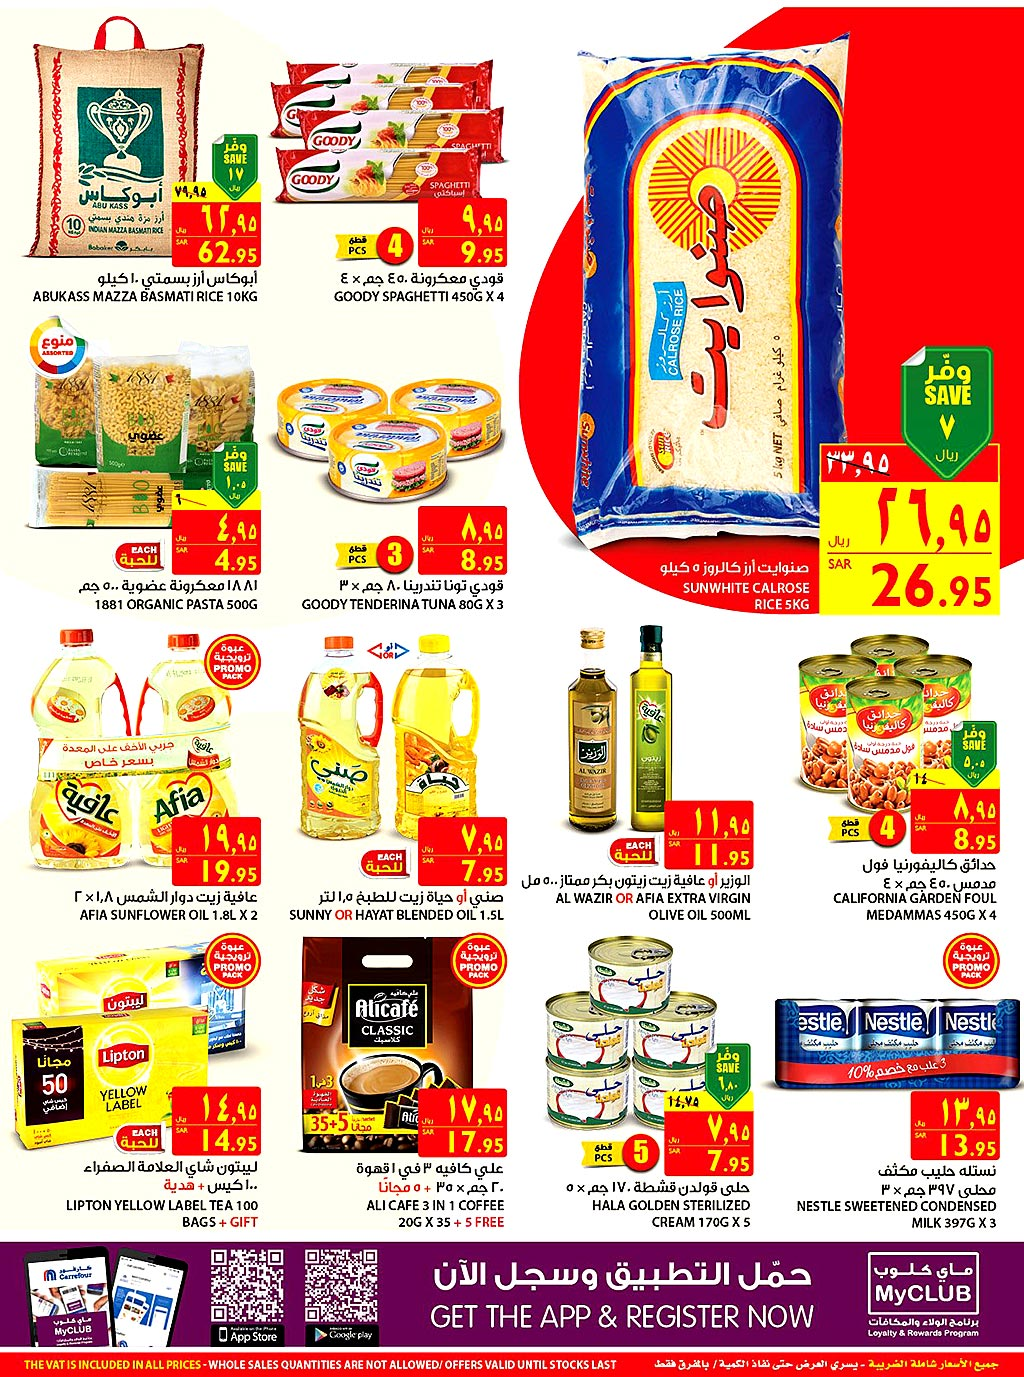 carrefour offers from 3july to 9july 2019 page number 2 عروض كارفور-السعودية من 3 يوليو حتى 9 يوليو 2019 صفحة رقم 2